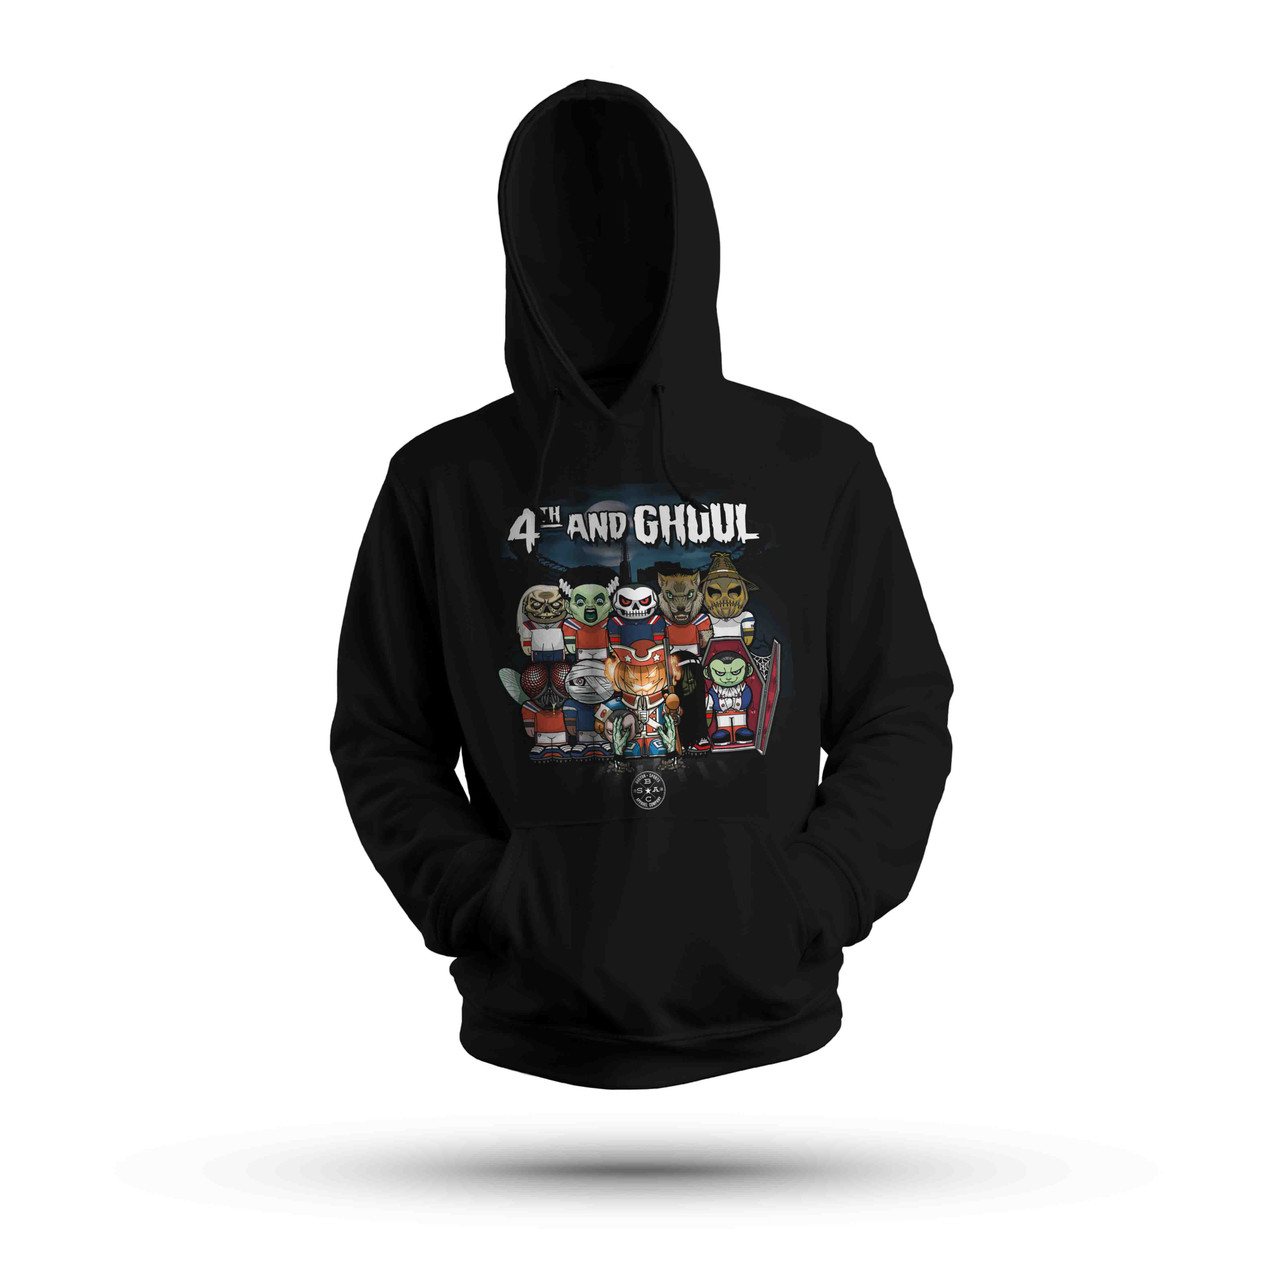 4th and Ghoul (Hoodie)